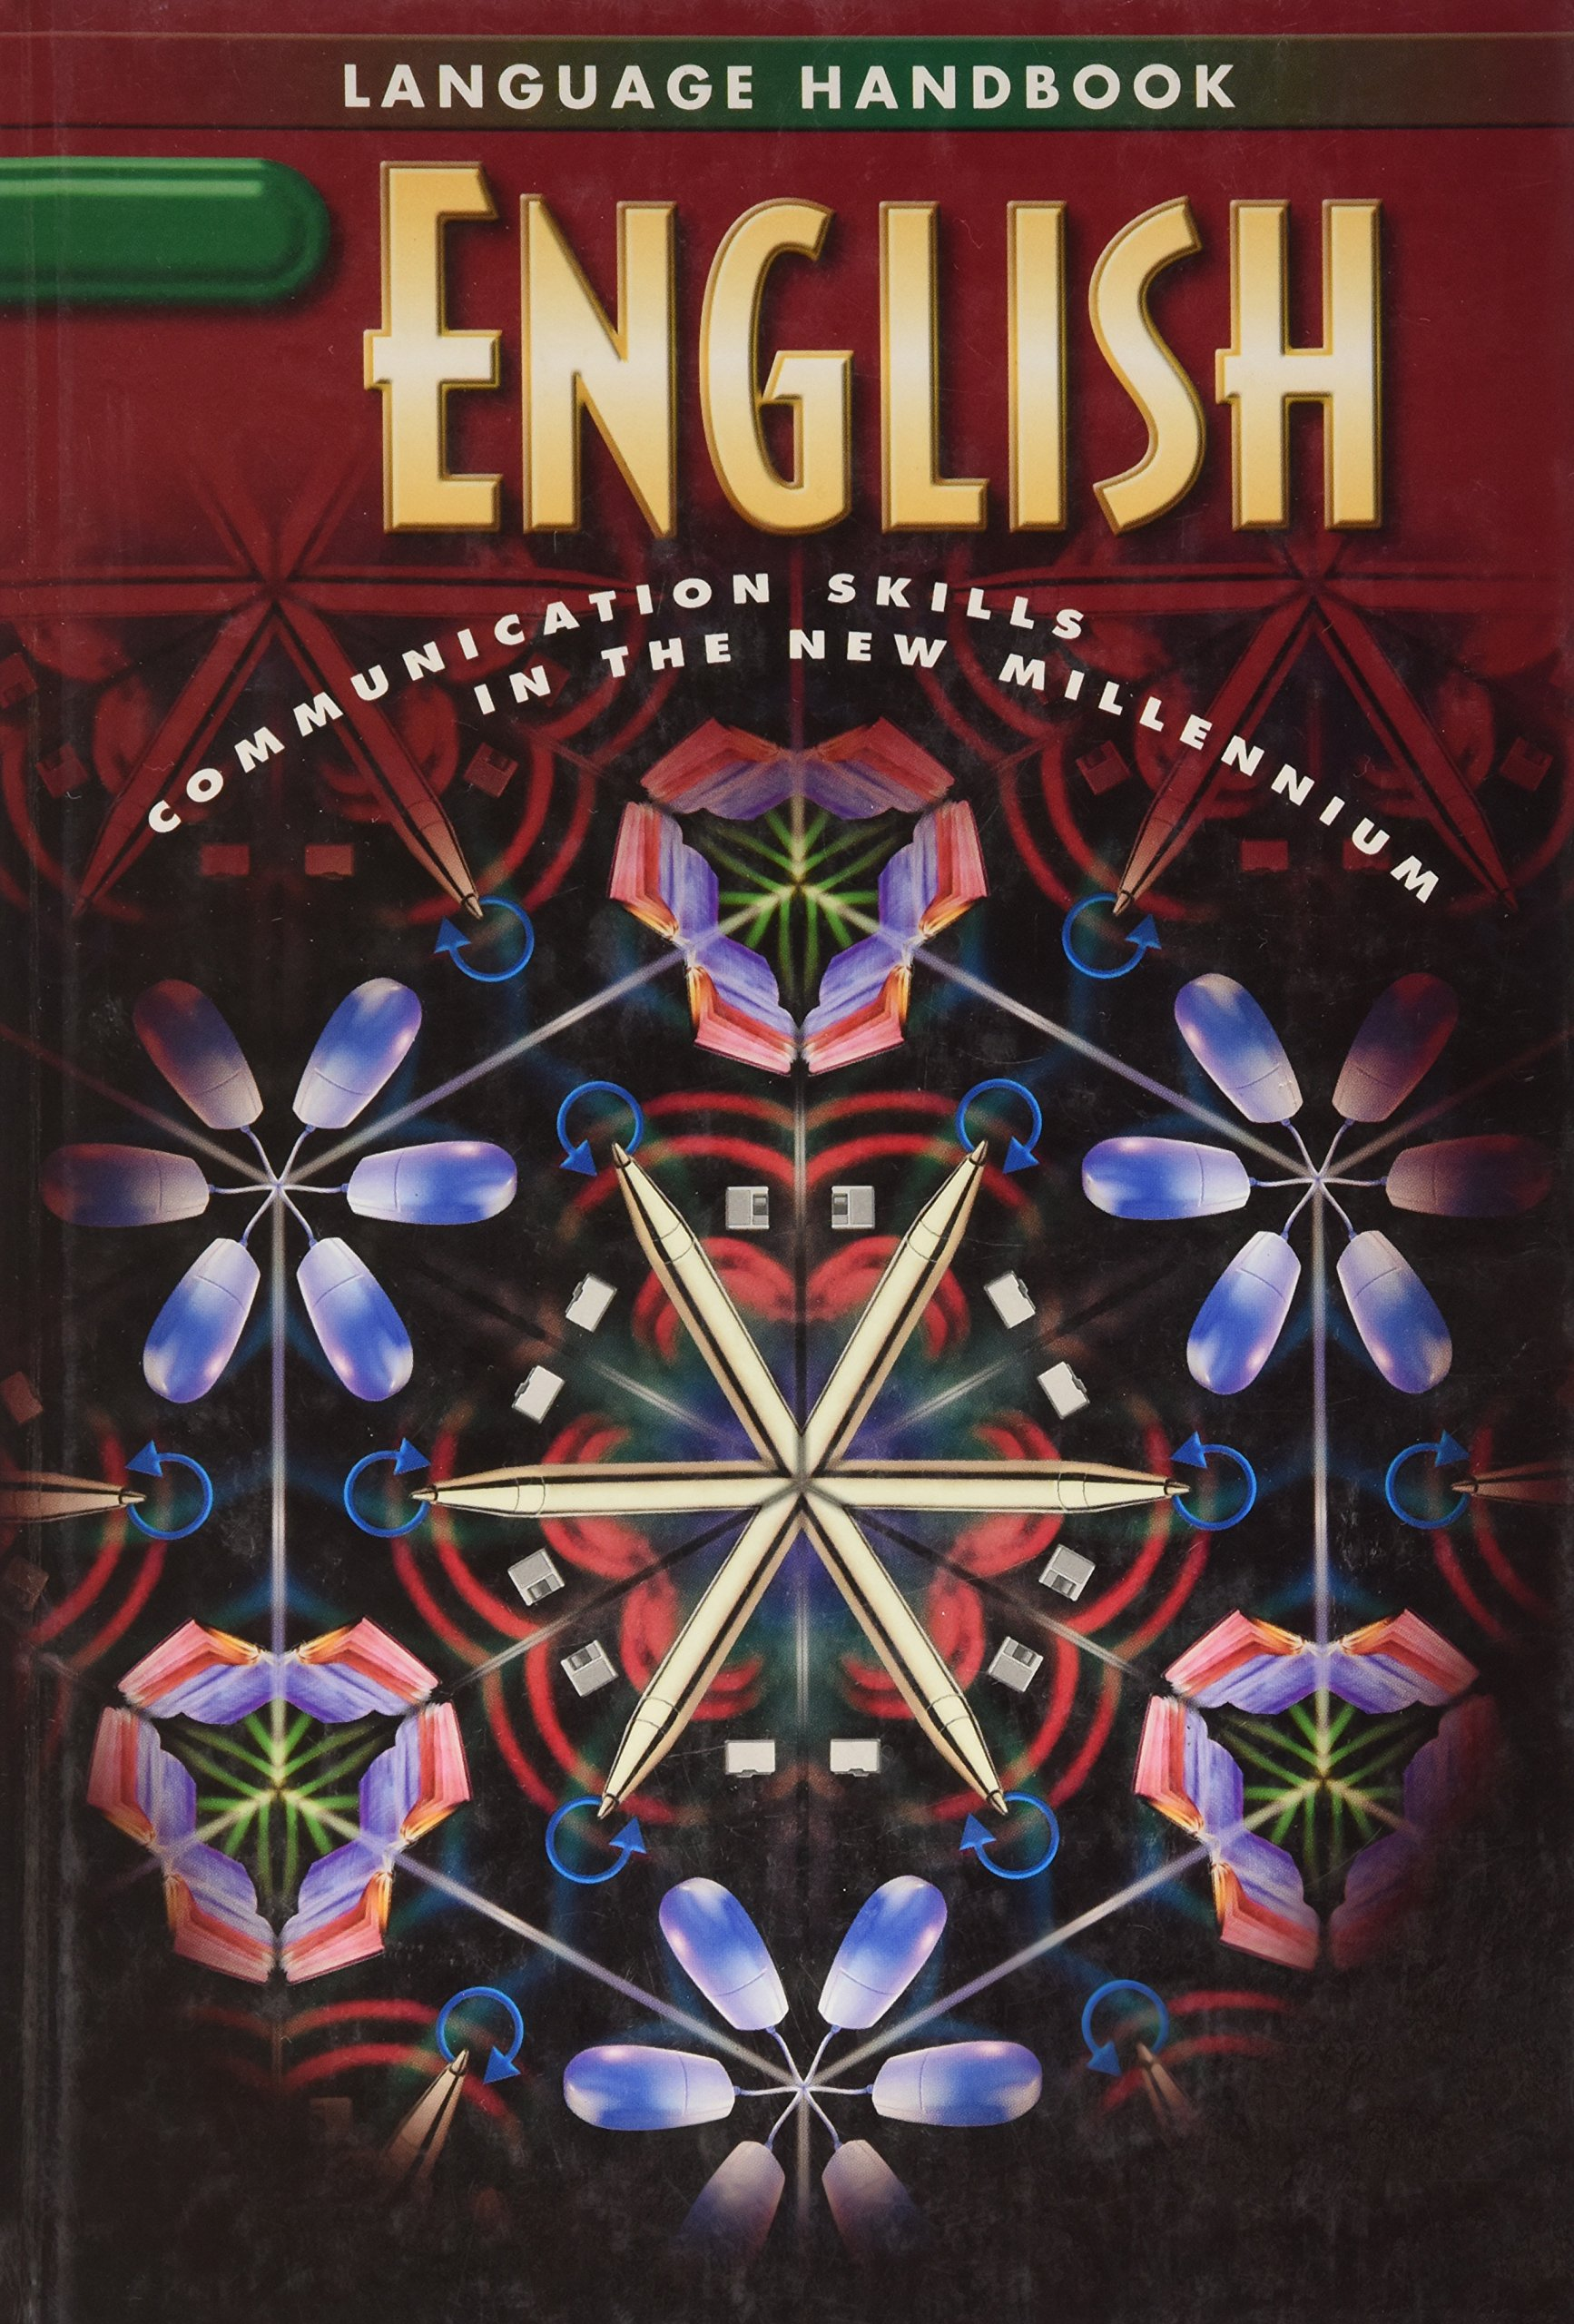 English - Communication Skills in the New Millennium (Language Handbook, Grade 7) by Perfection Learning